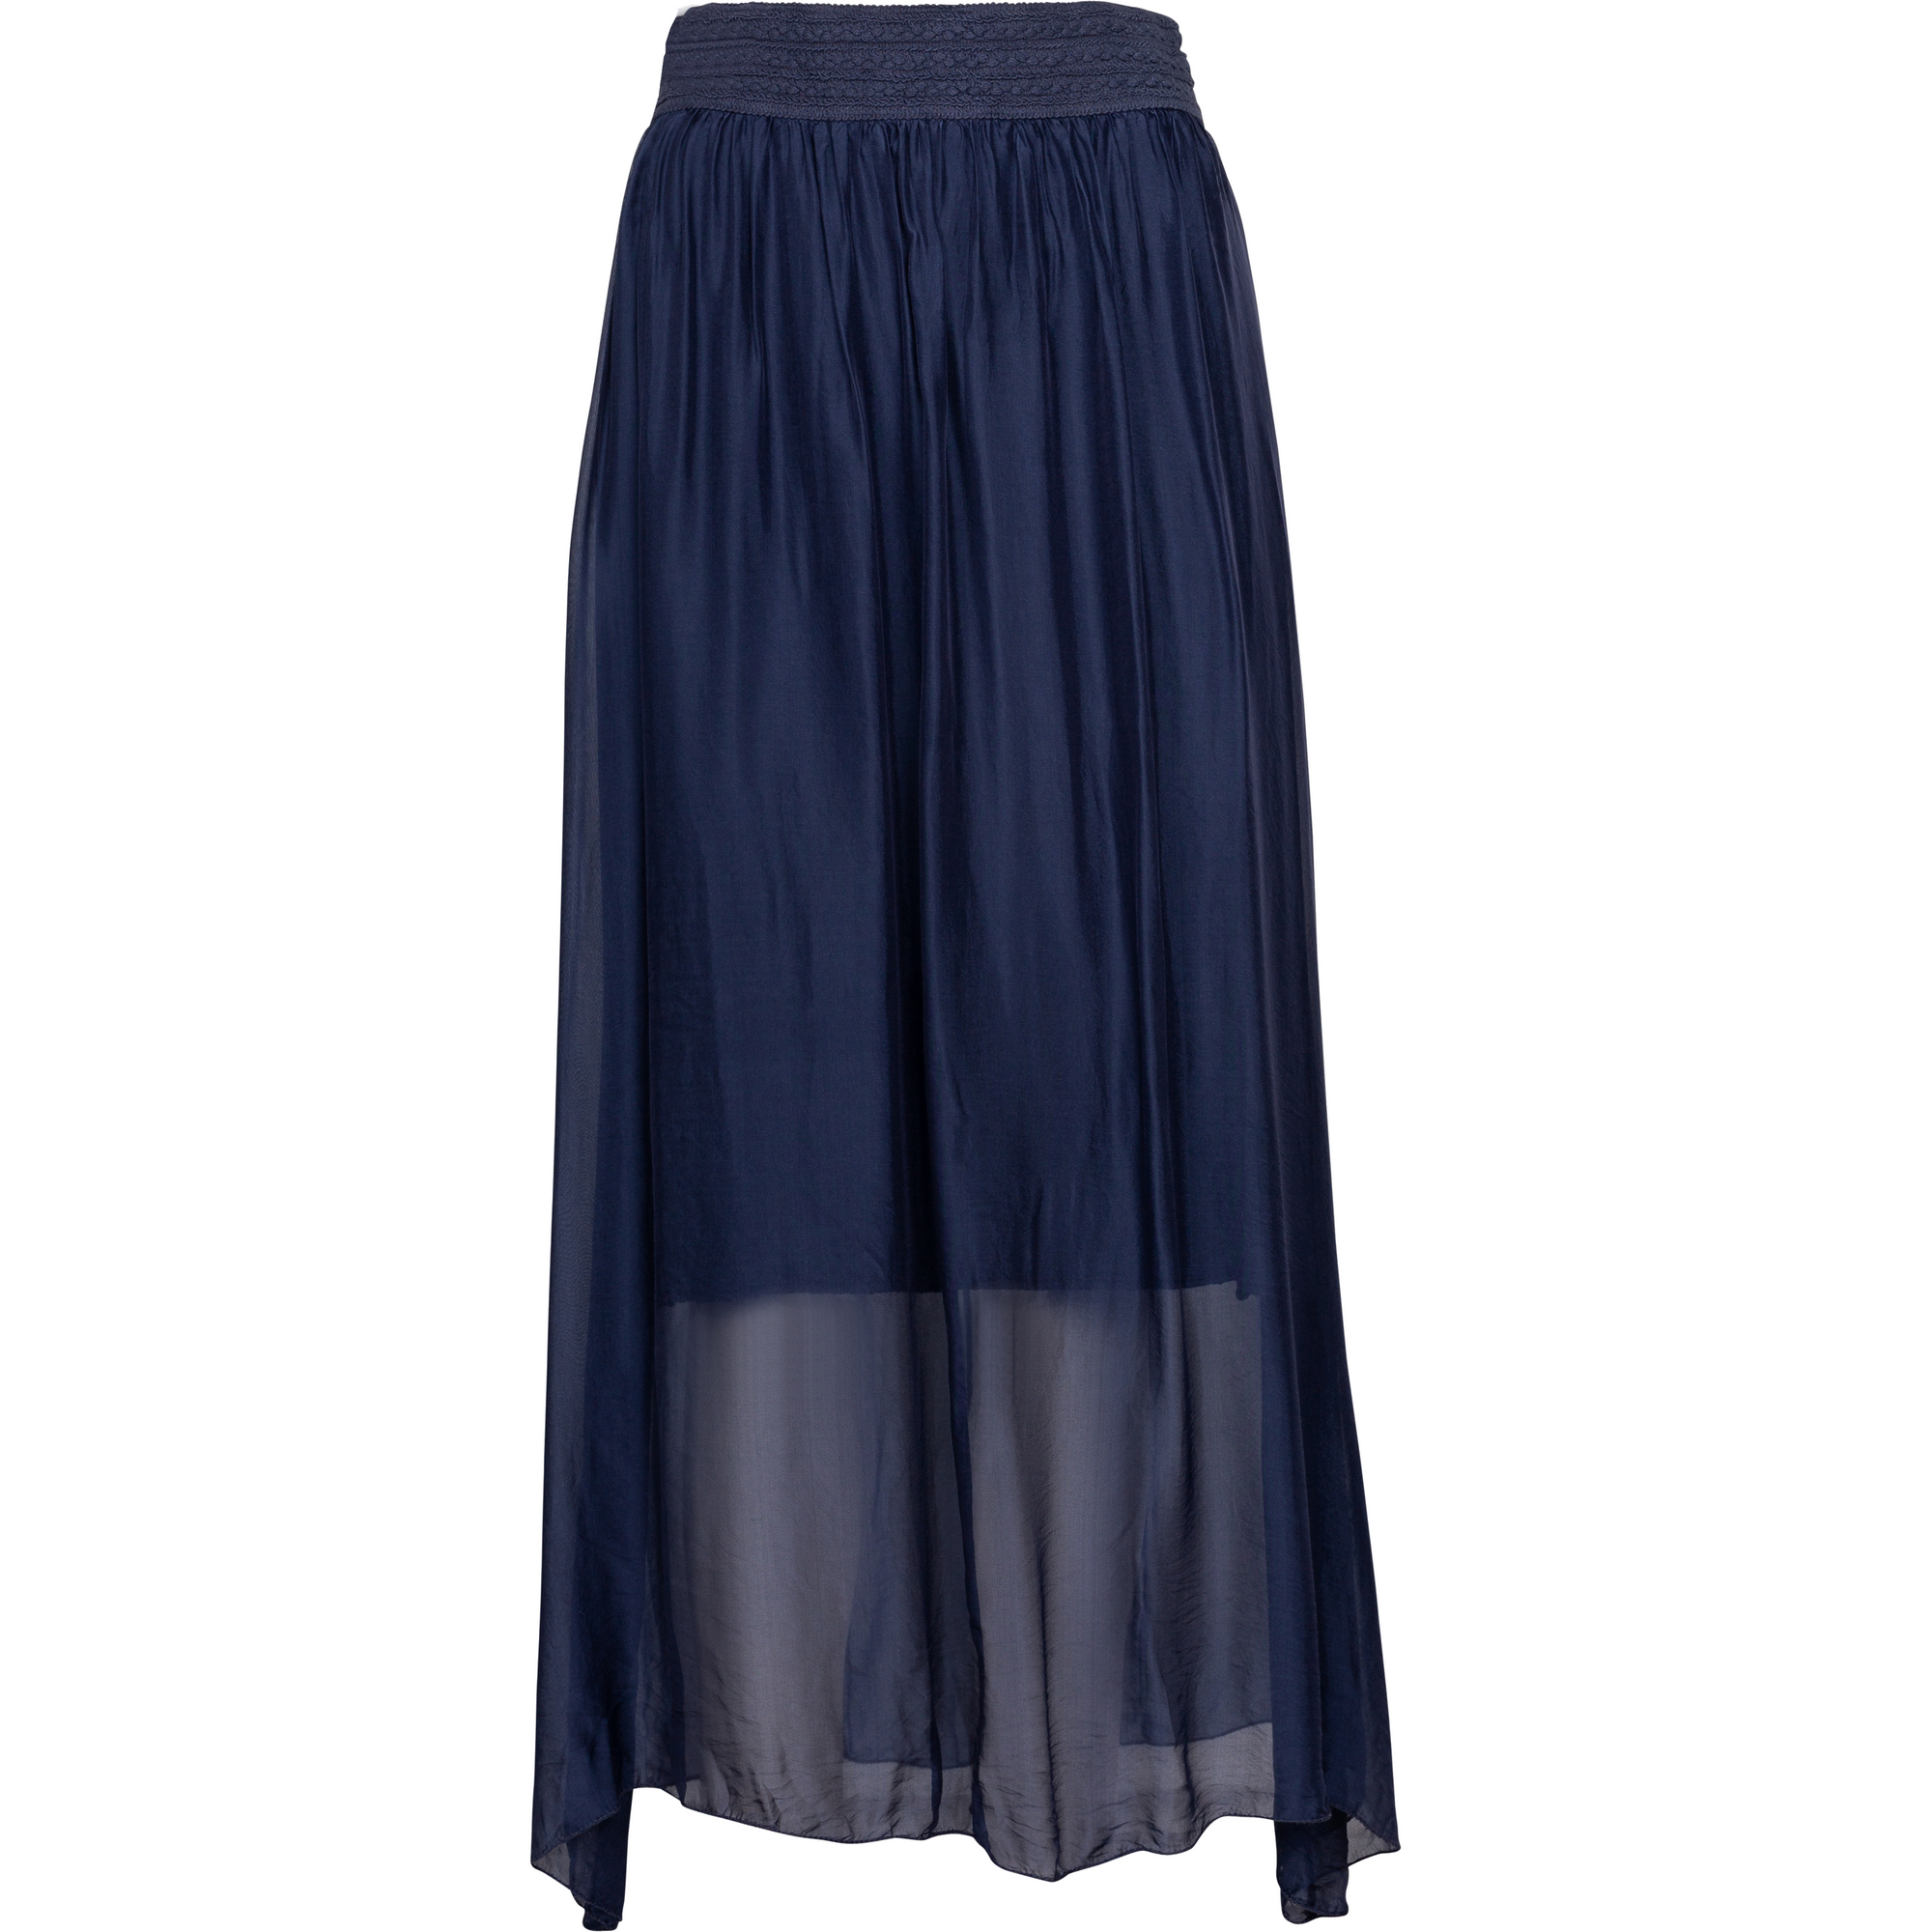 M Made In Italy Woven Skirt in Navy